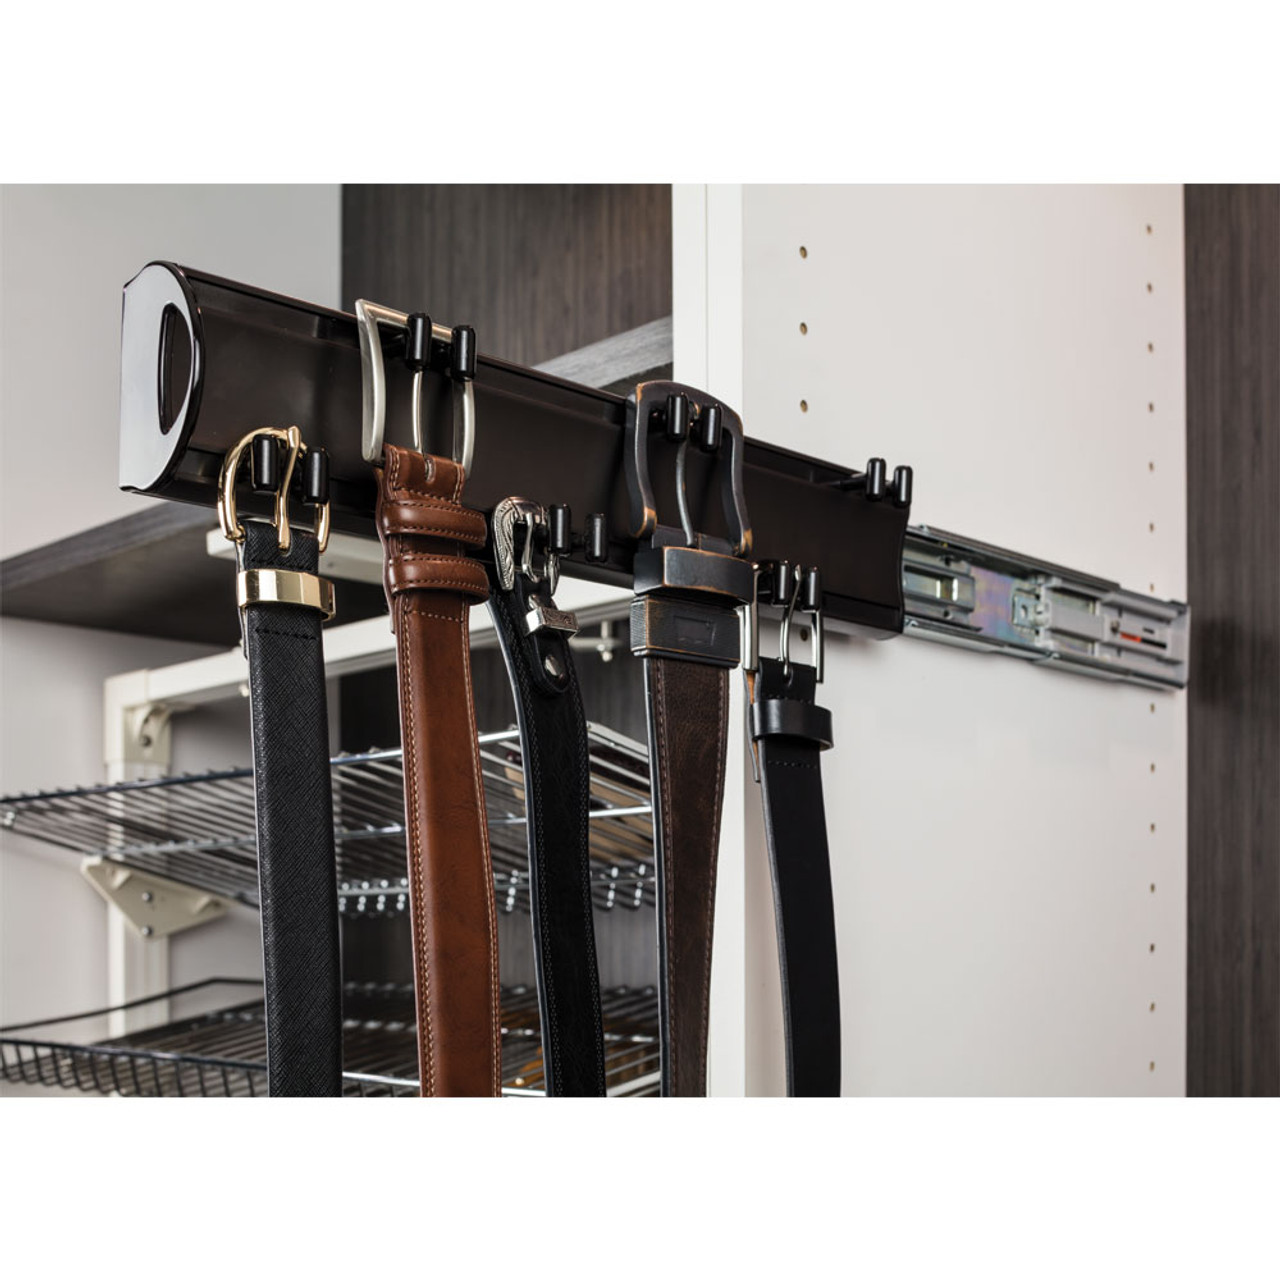 Nickel Hardware Resources PPR-2414 13 Hook Pull Out Pants Rack